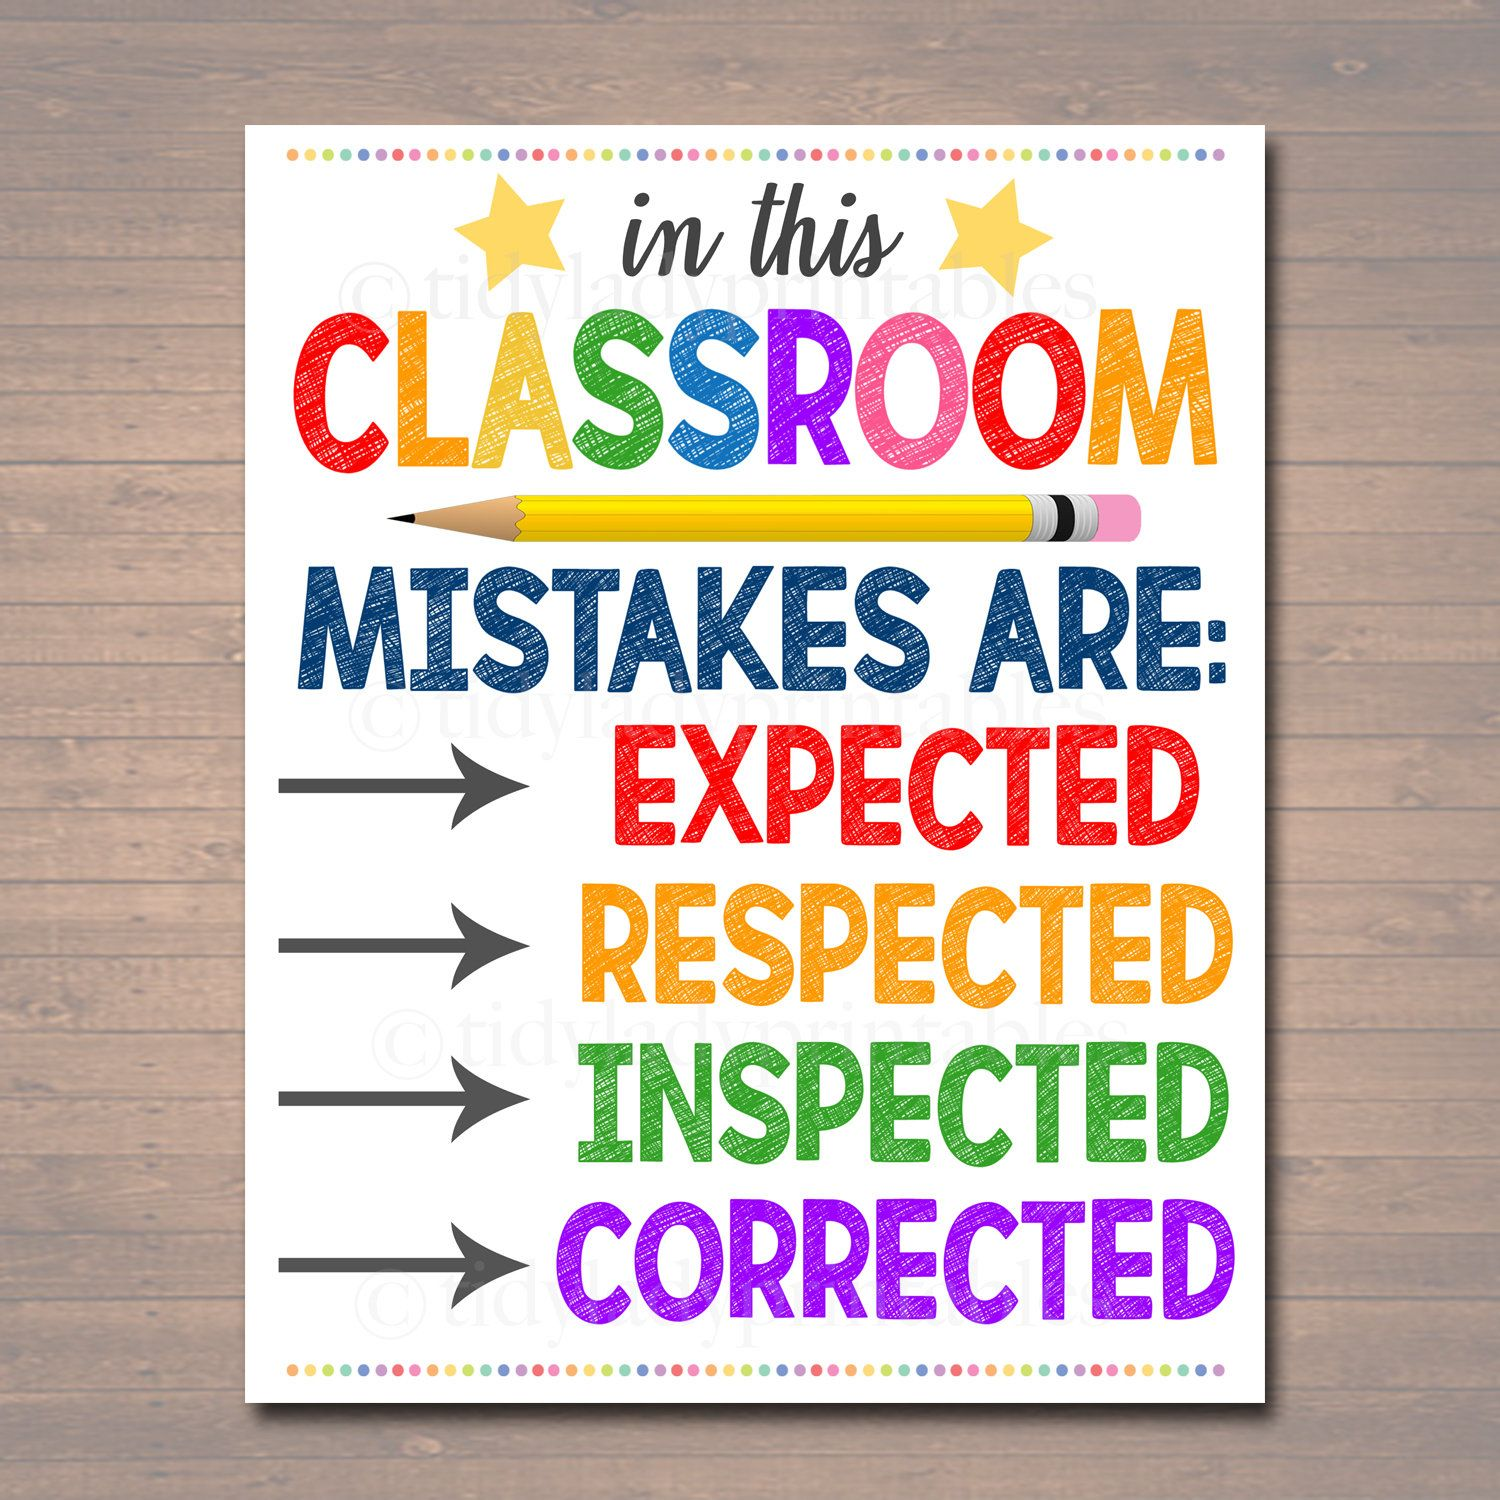 Classroom Decor Mistakes Are Proof You Re Trying Poster Classroom Poster Educational Motivational Poster Mistakes Expected Respected Classroom Posters School Guidance Counselor Teacher Classroom Posters